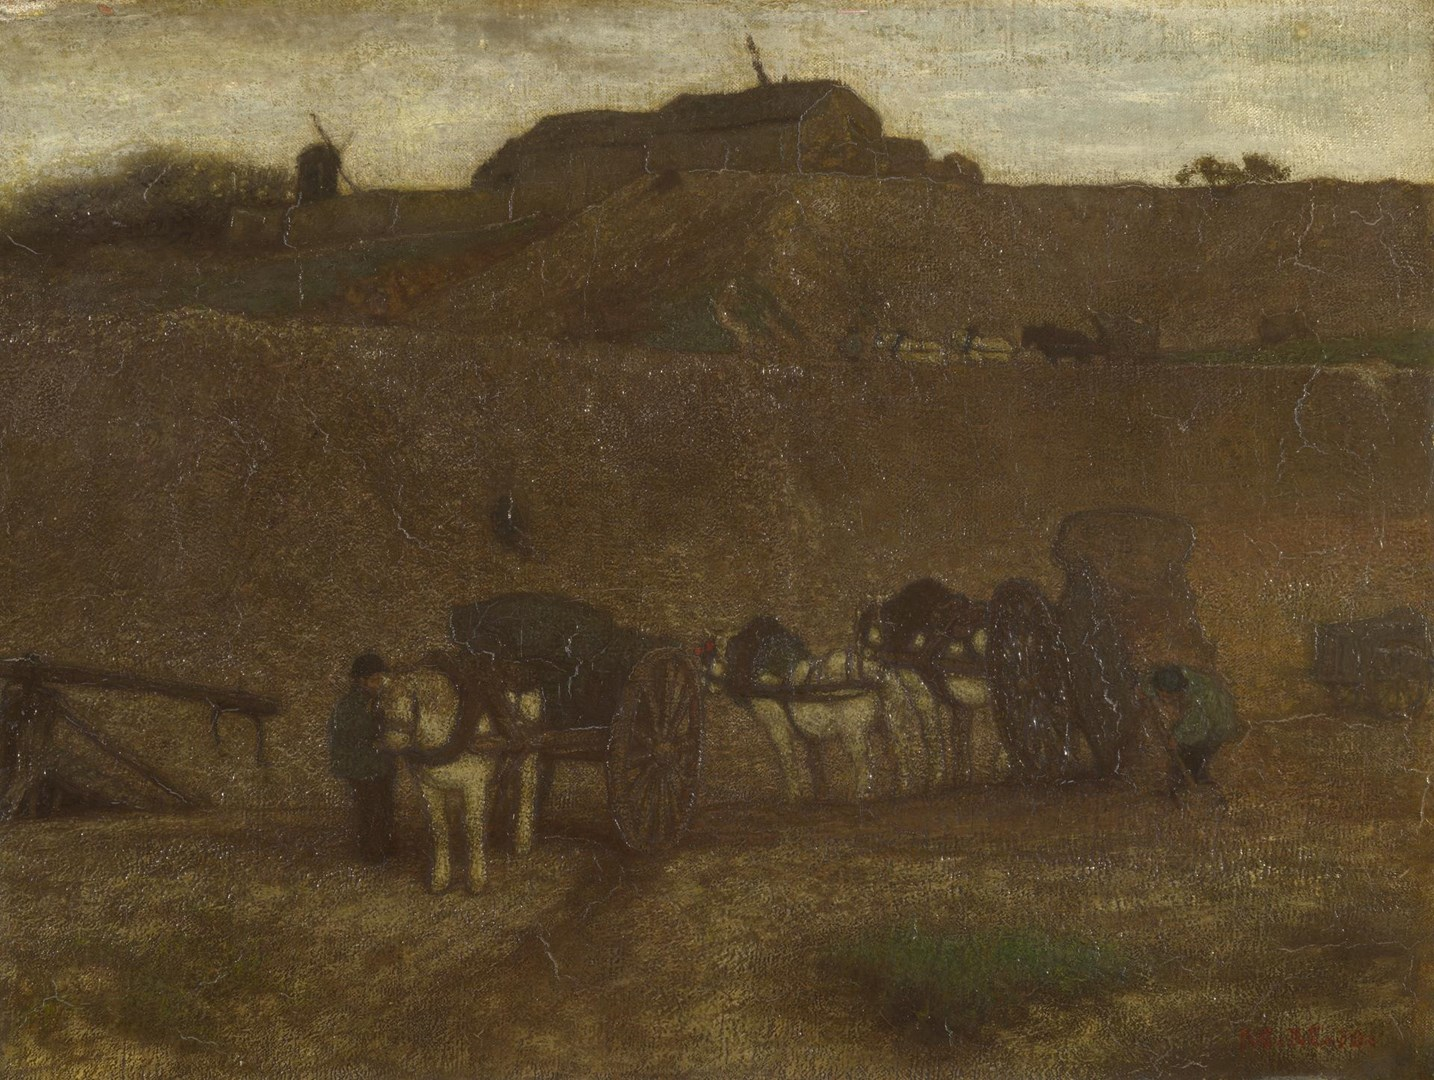 Men unloading Carts, Montmartre by Matthijs Maris